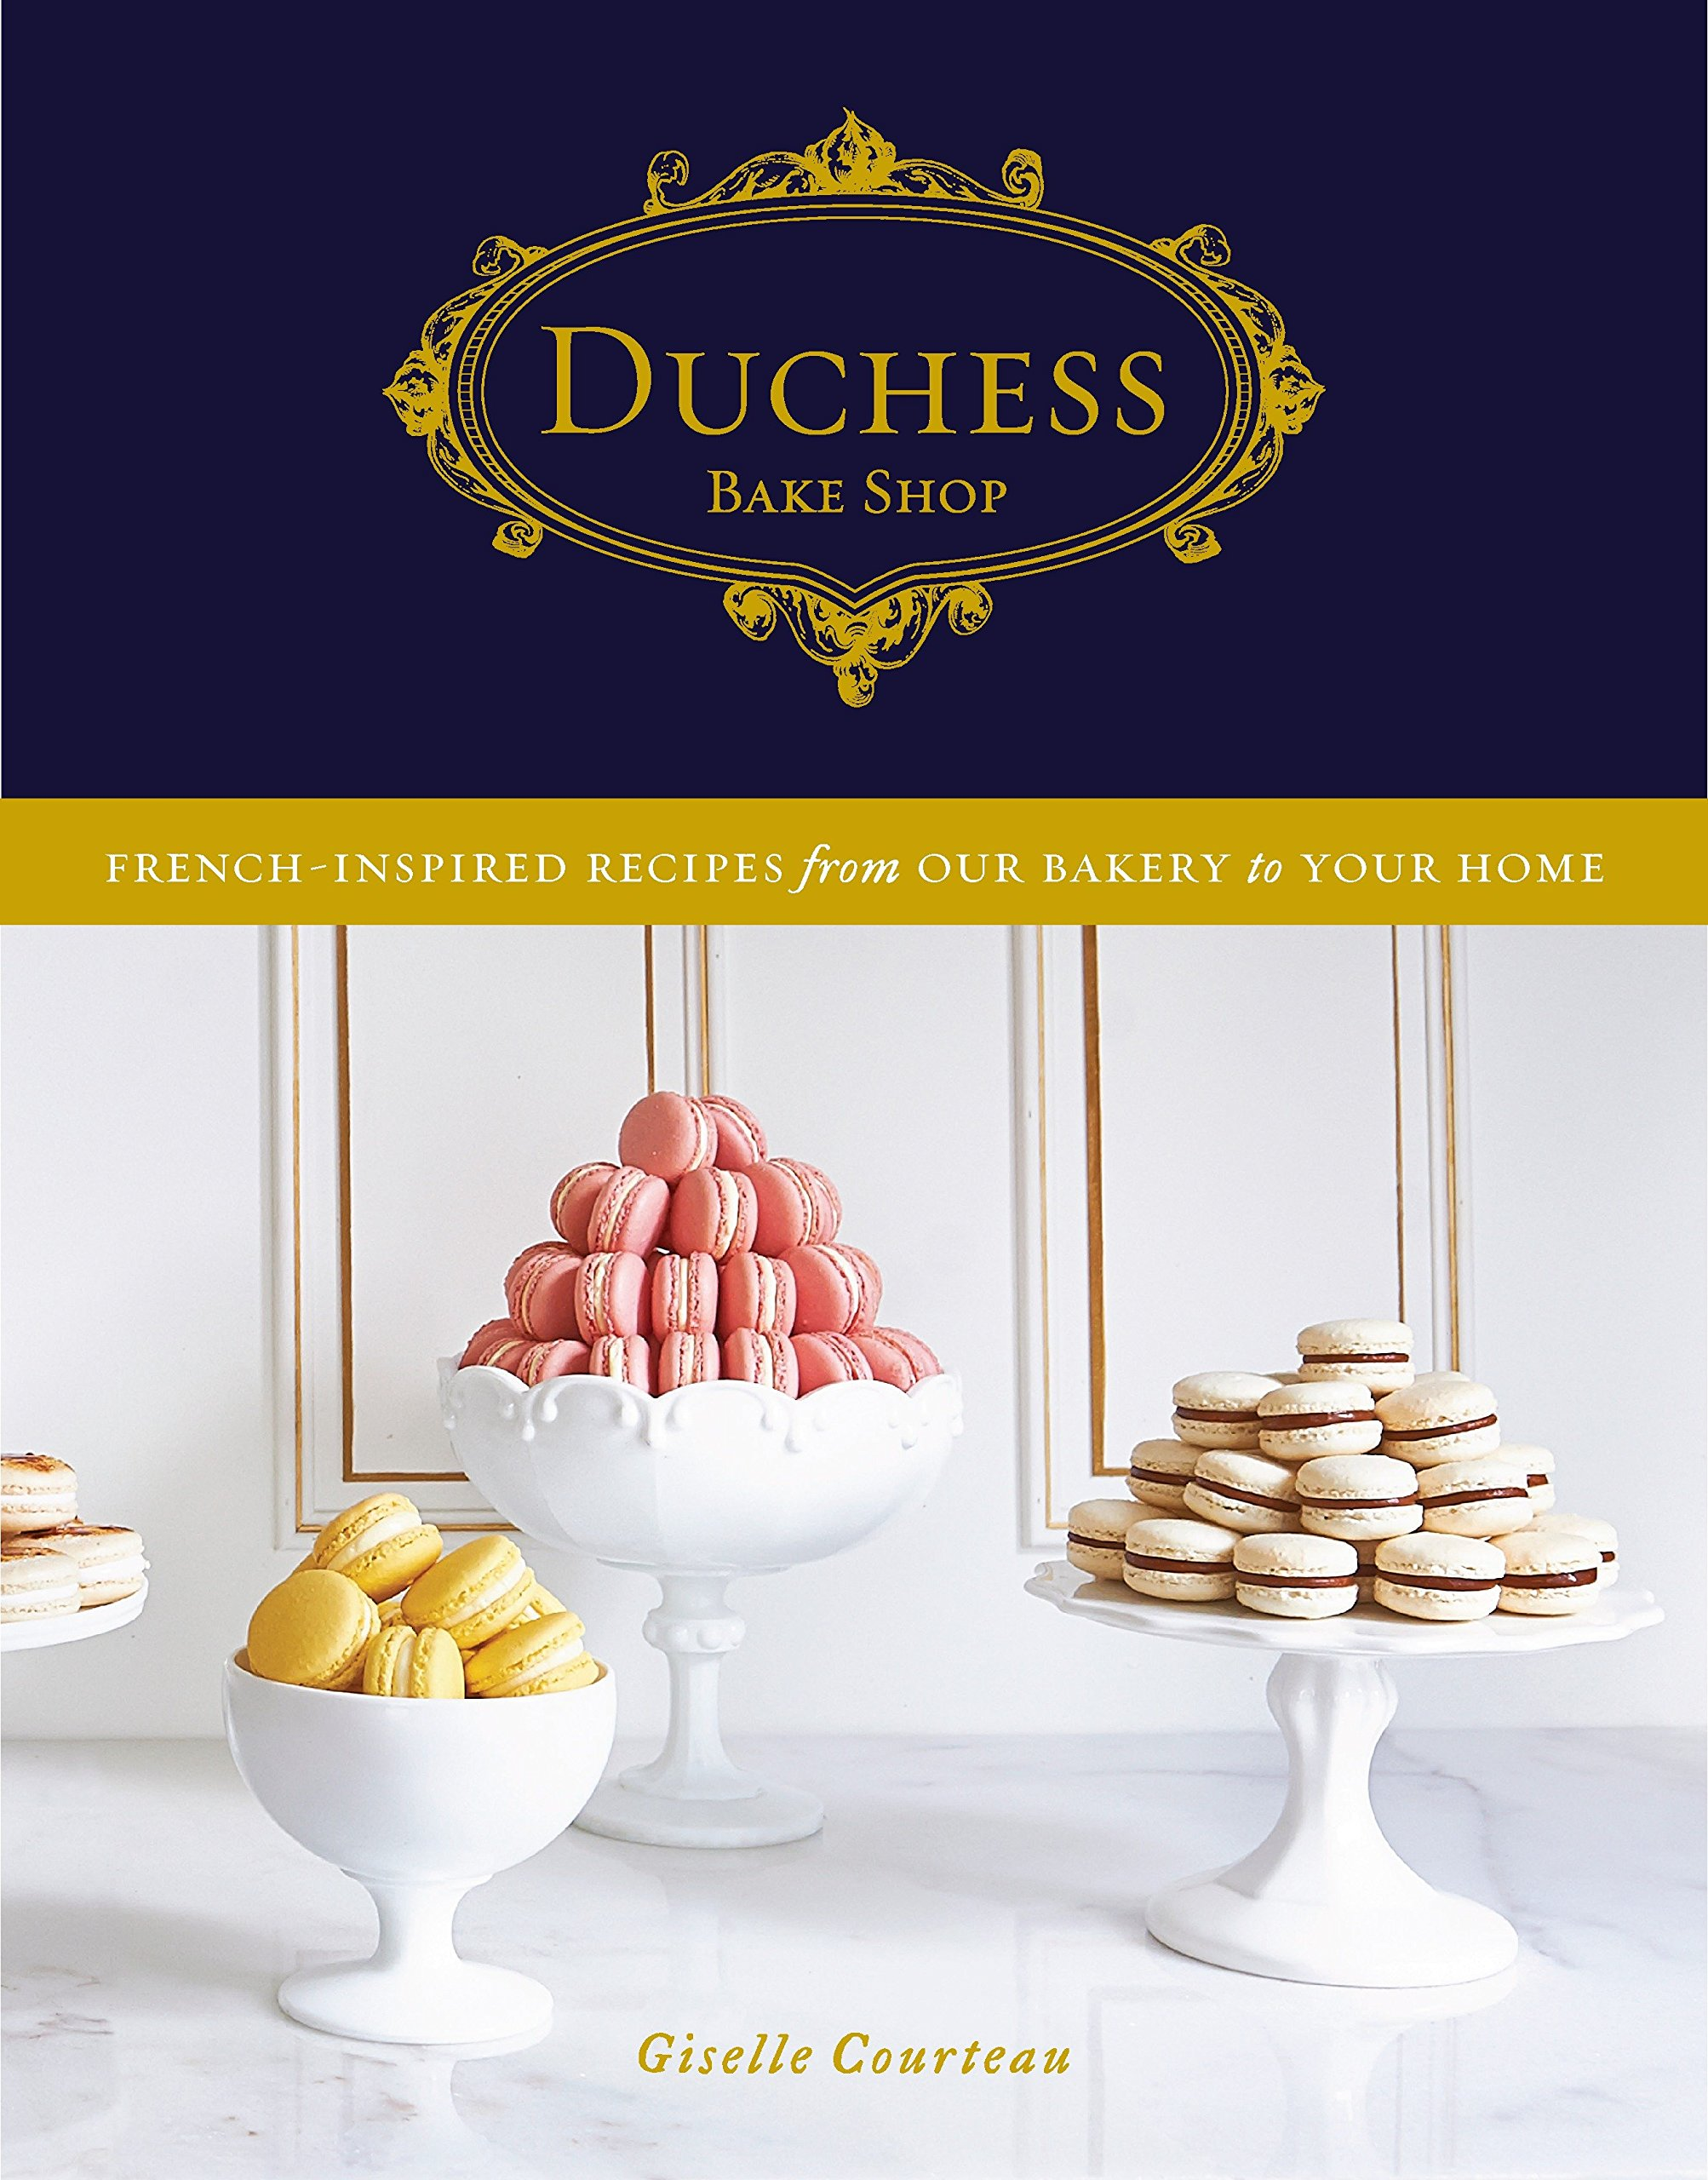 French-Inspired Recipes from Our Bakery to Your Home Duchess Bake Shop